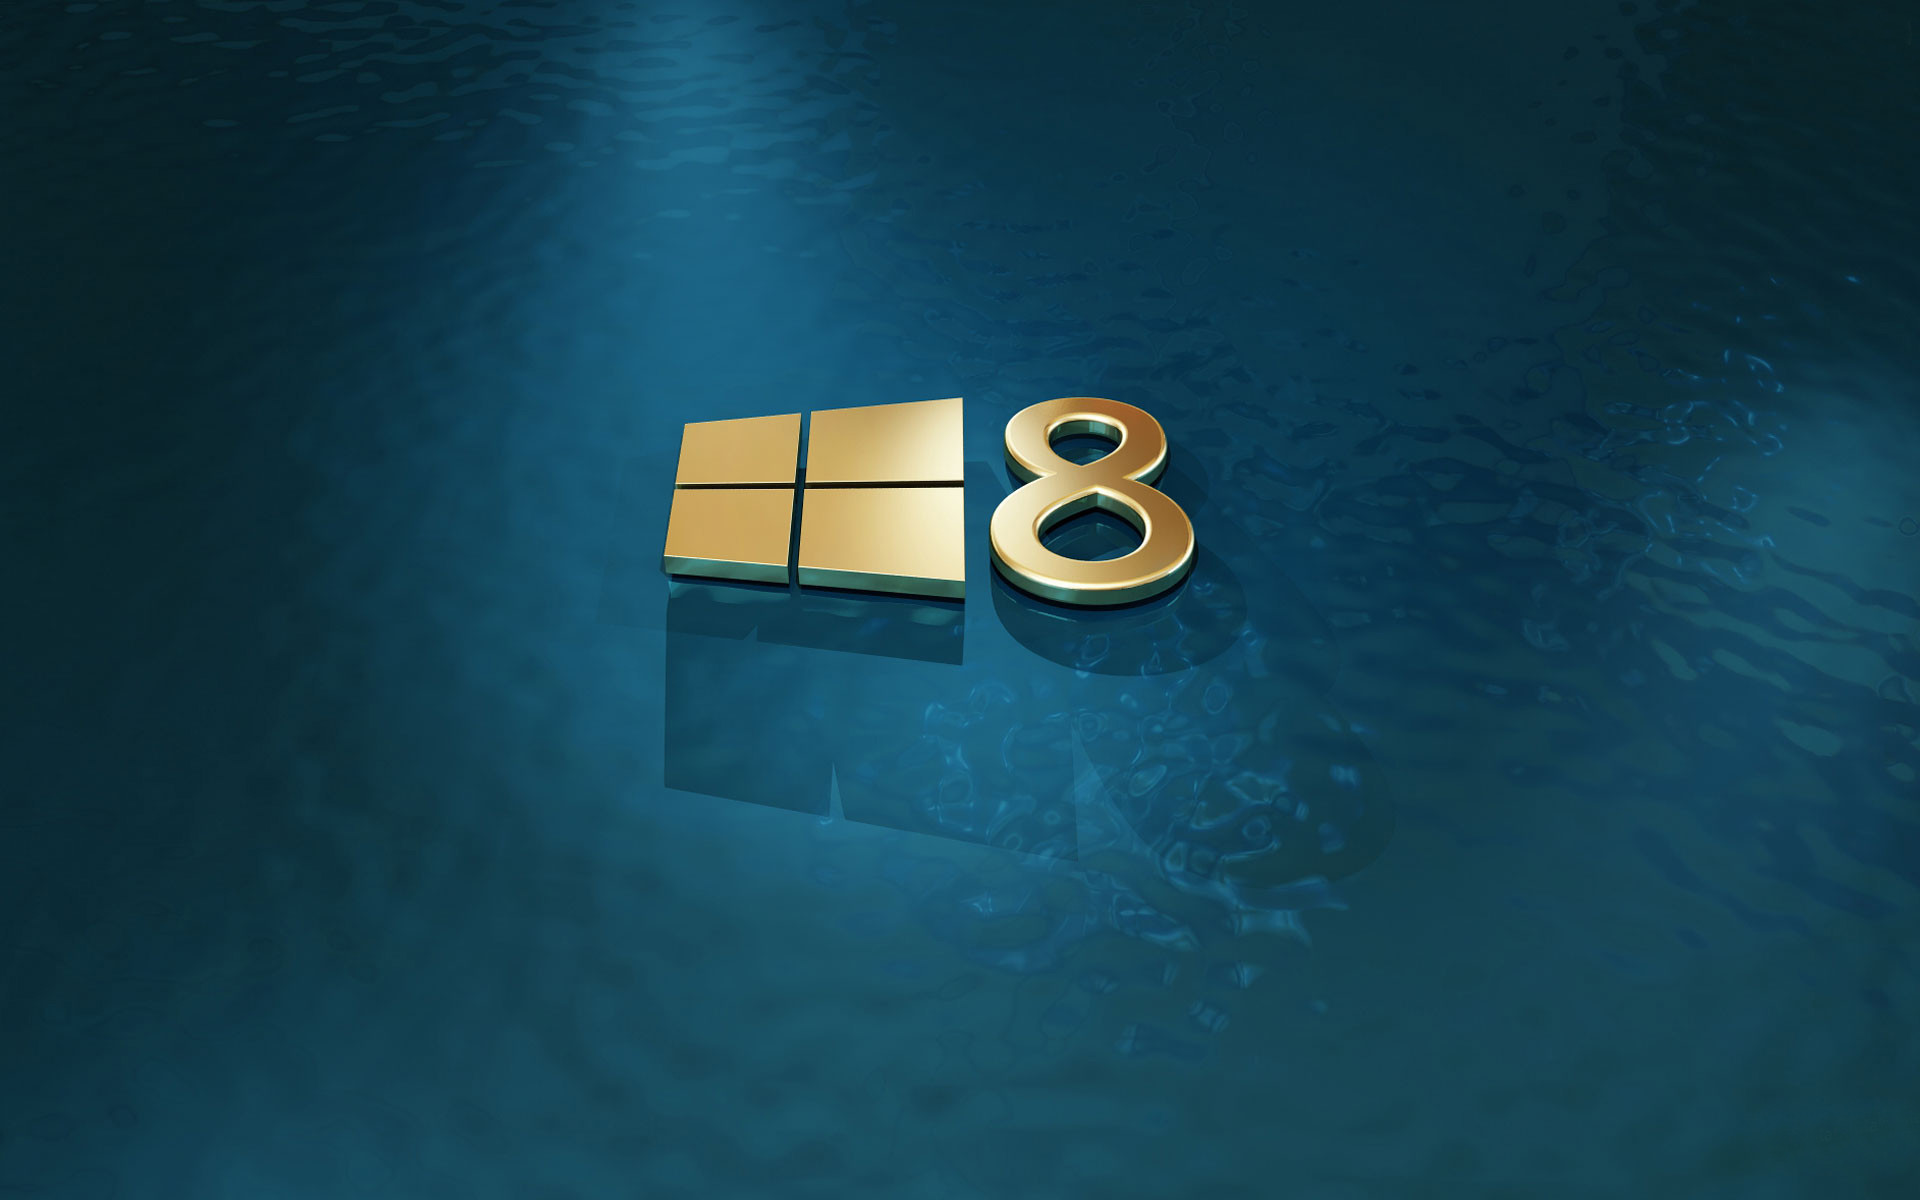 Backgrounds Wallpapers HD for Windows 8 74 images 1920x1200